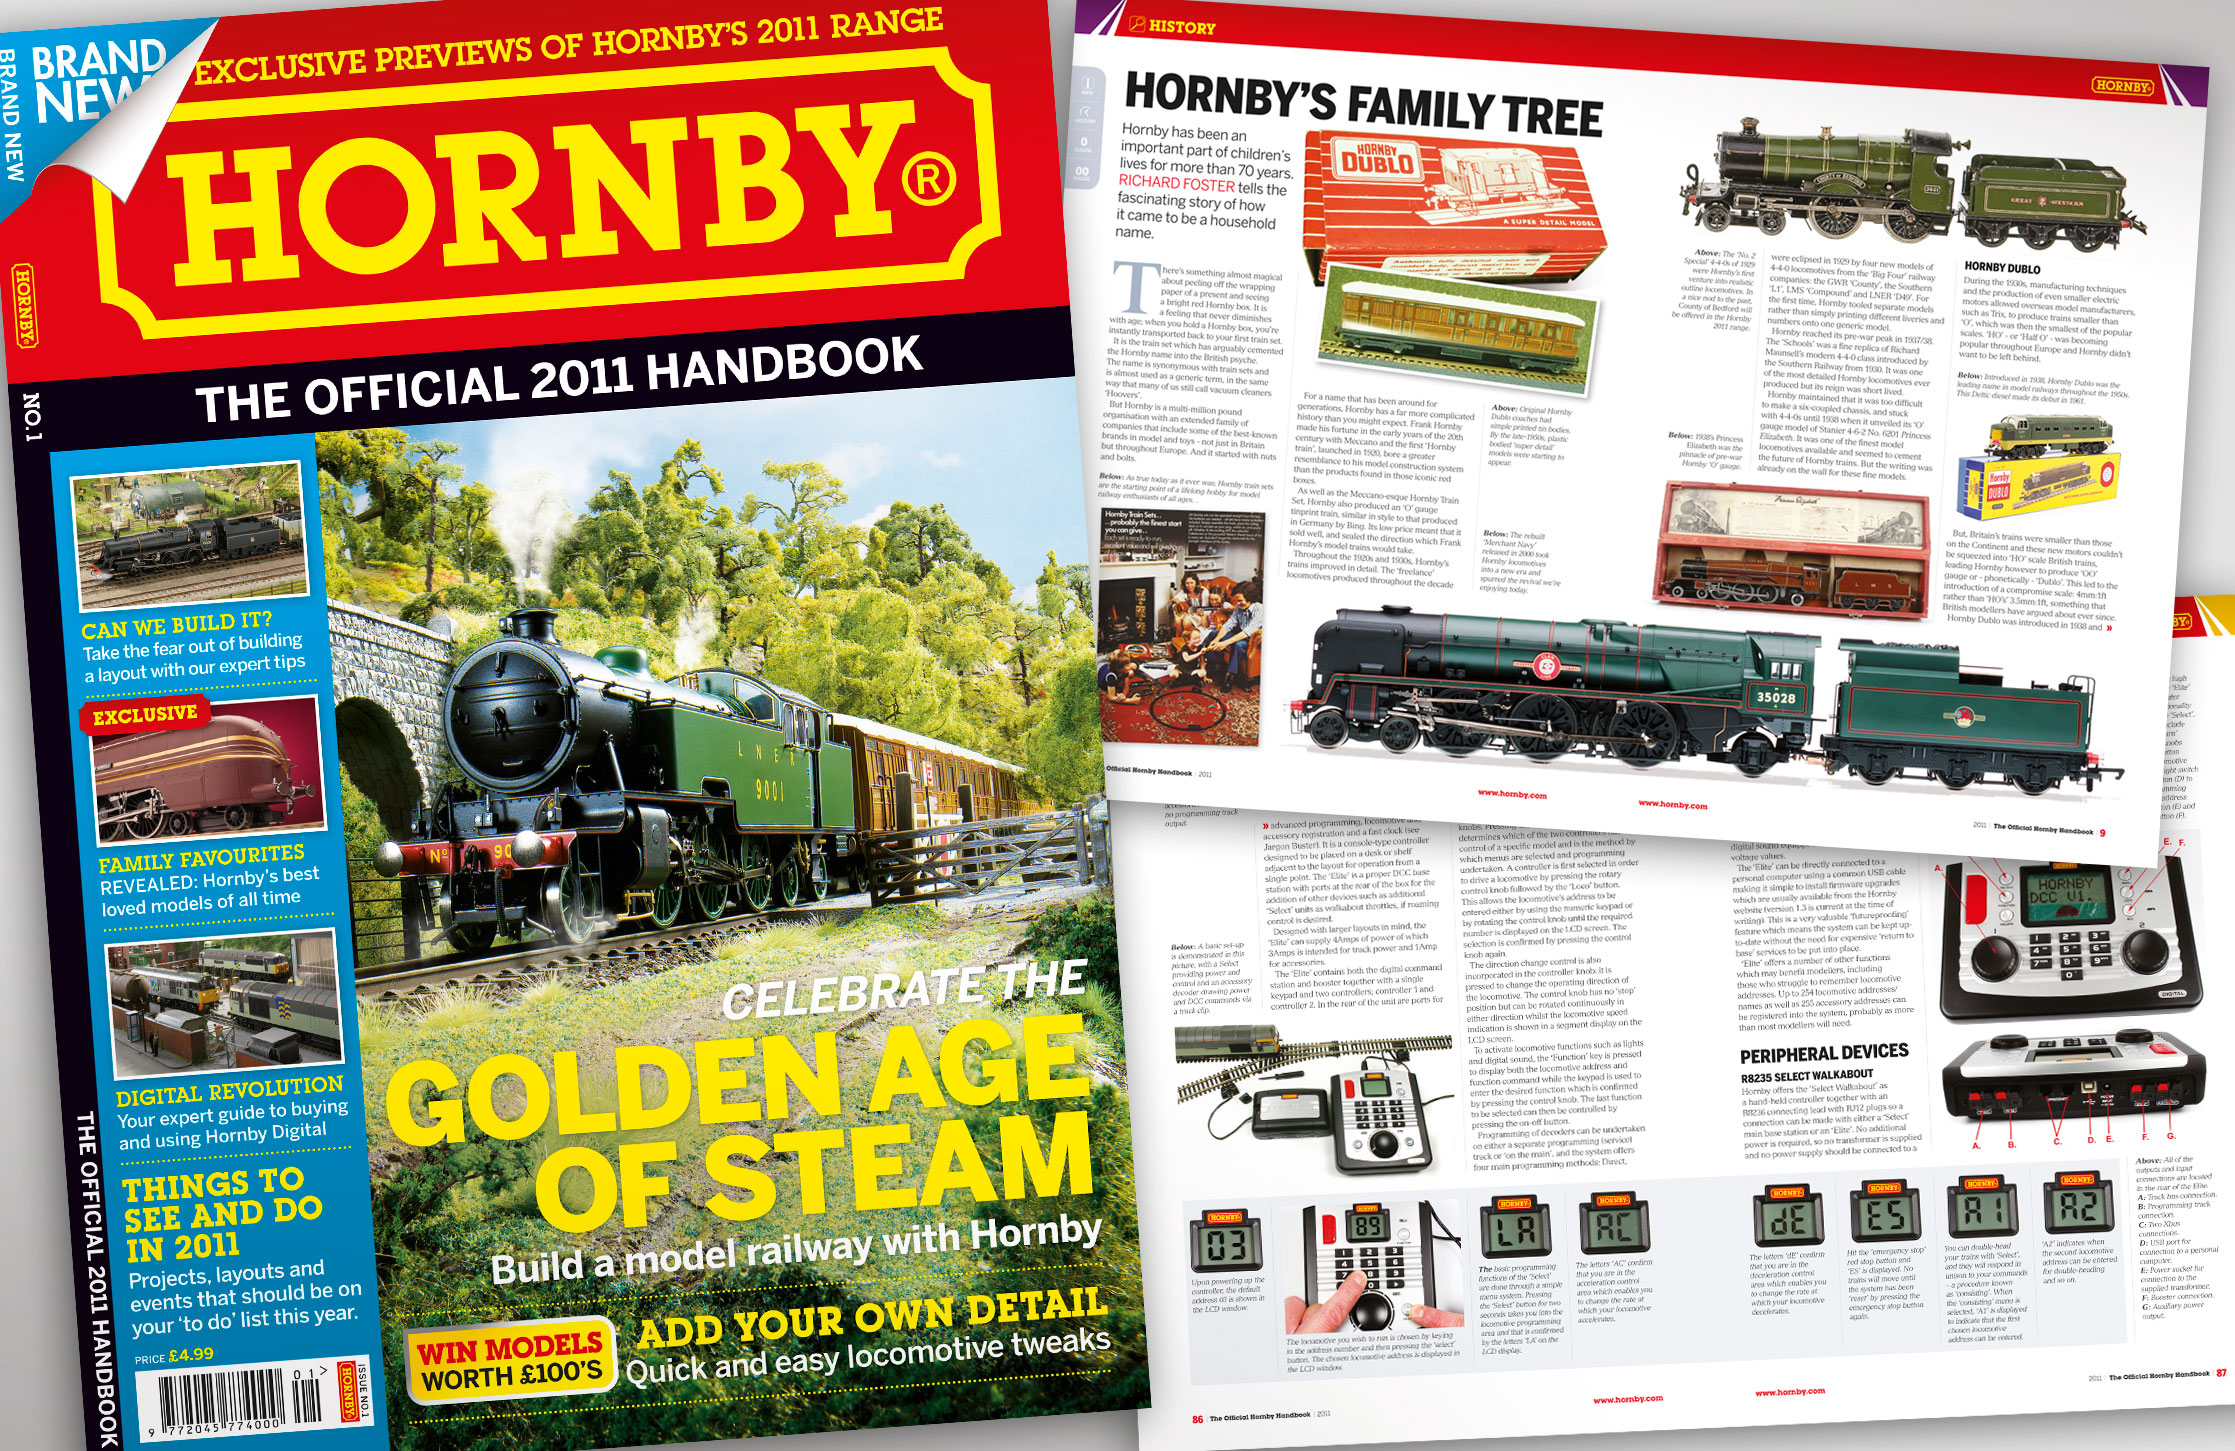 Design and artwork of a new style Hornby magazine for instore sales